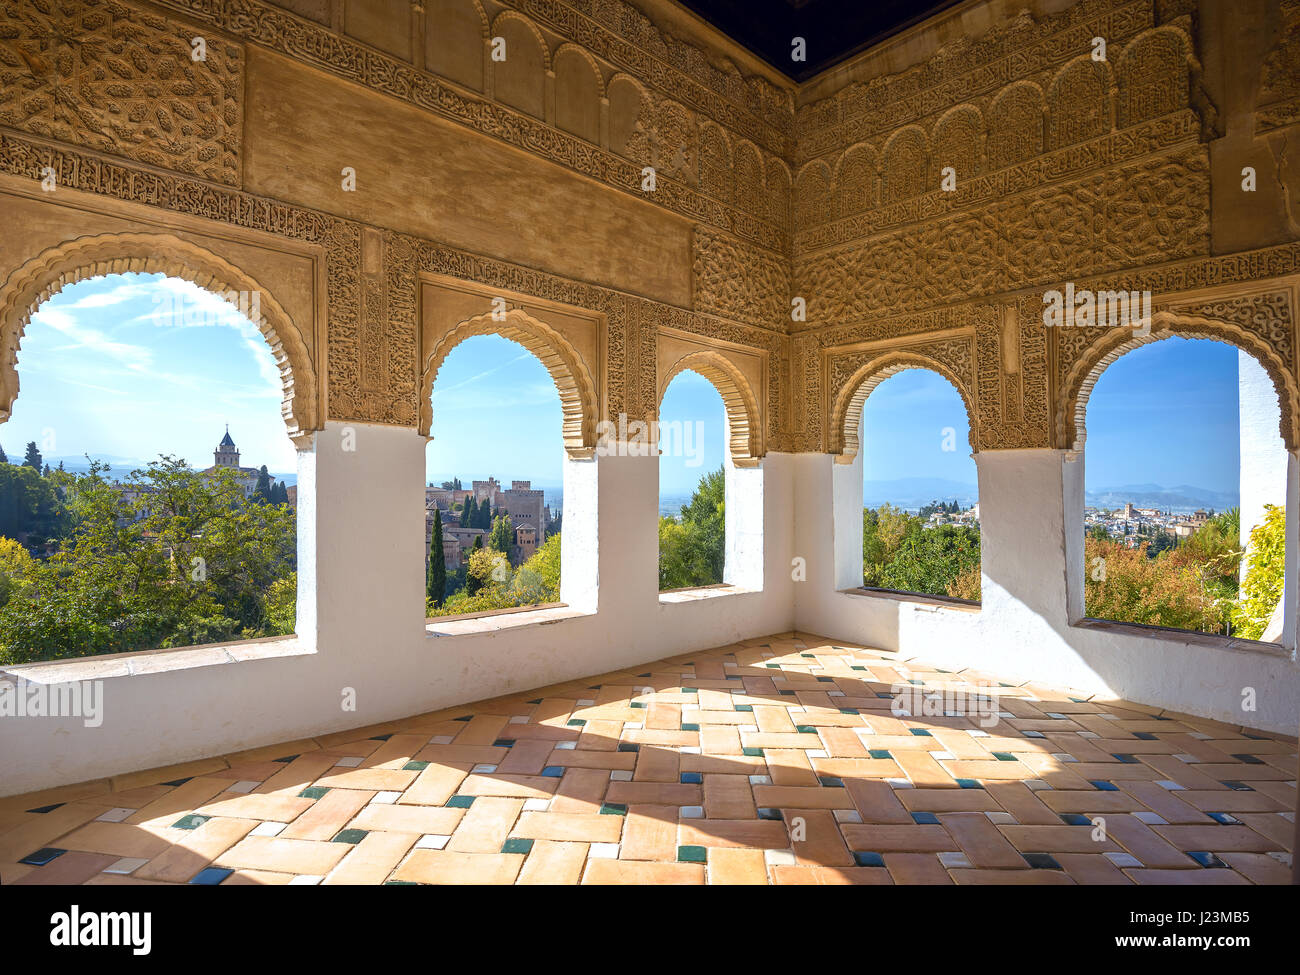 Interior decor of room with arches windows at Alhambra palace. Granada,  Andalusia, Spain